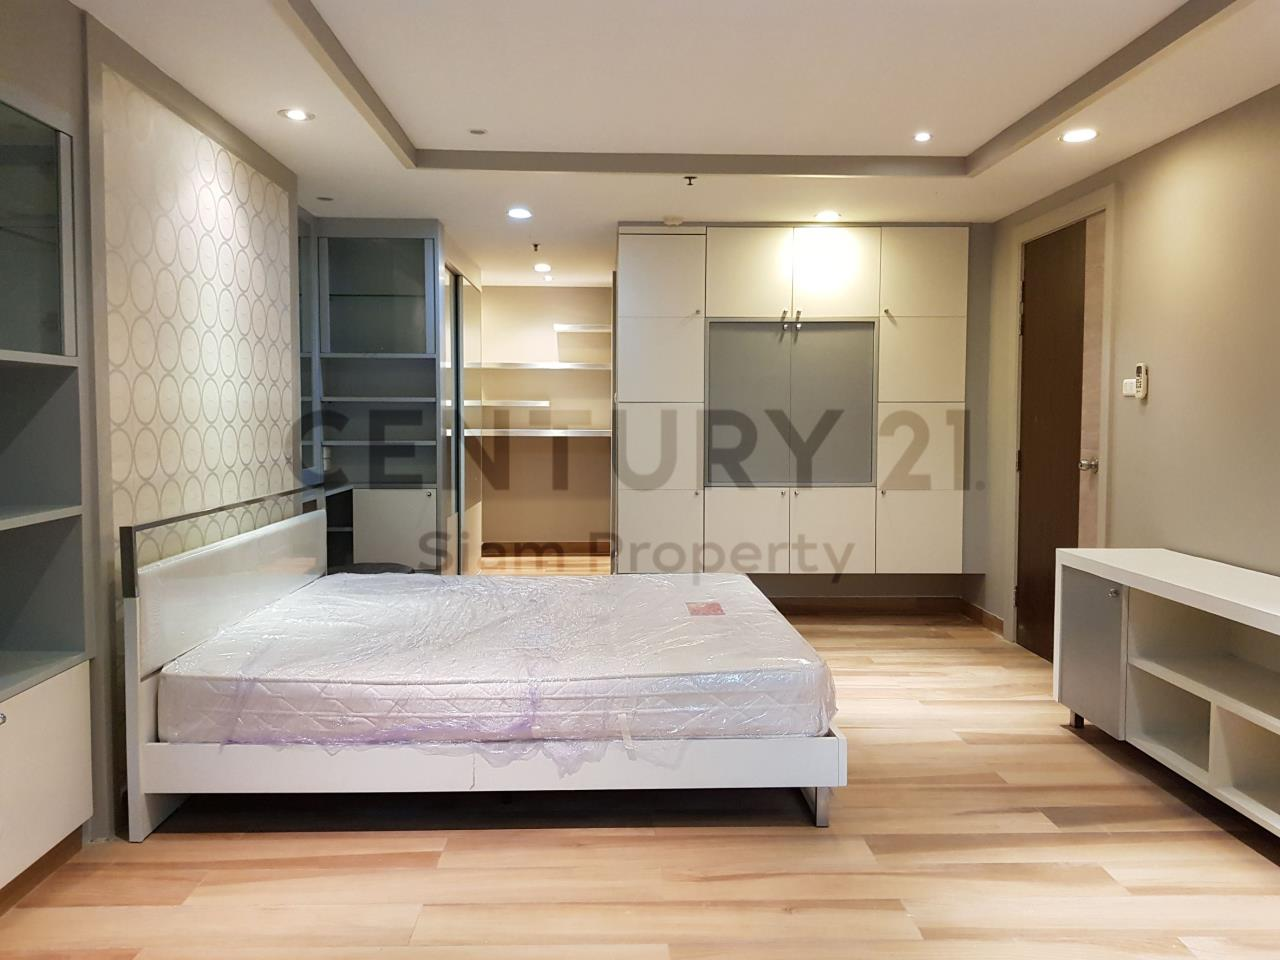 Century21 Siam Property Agency's The Trendy Condominium 10